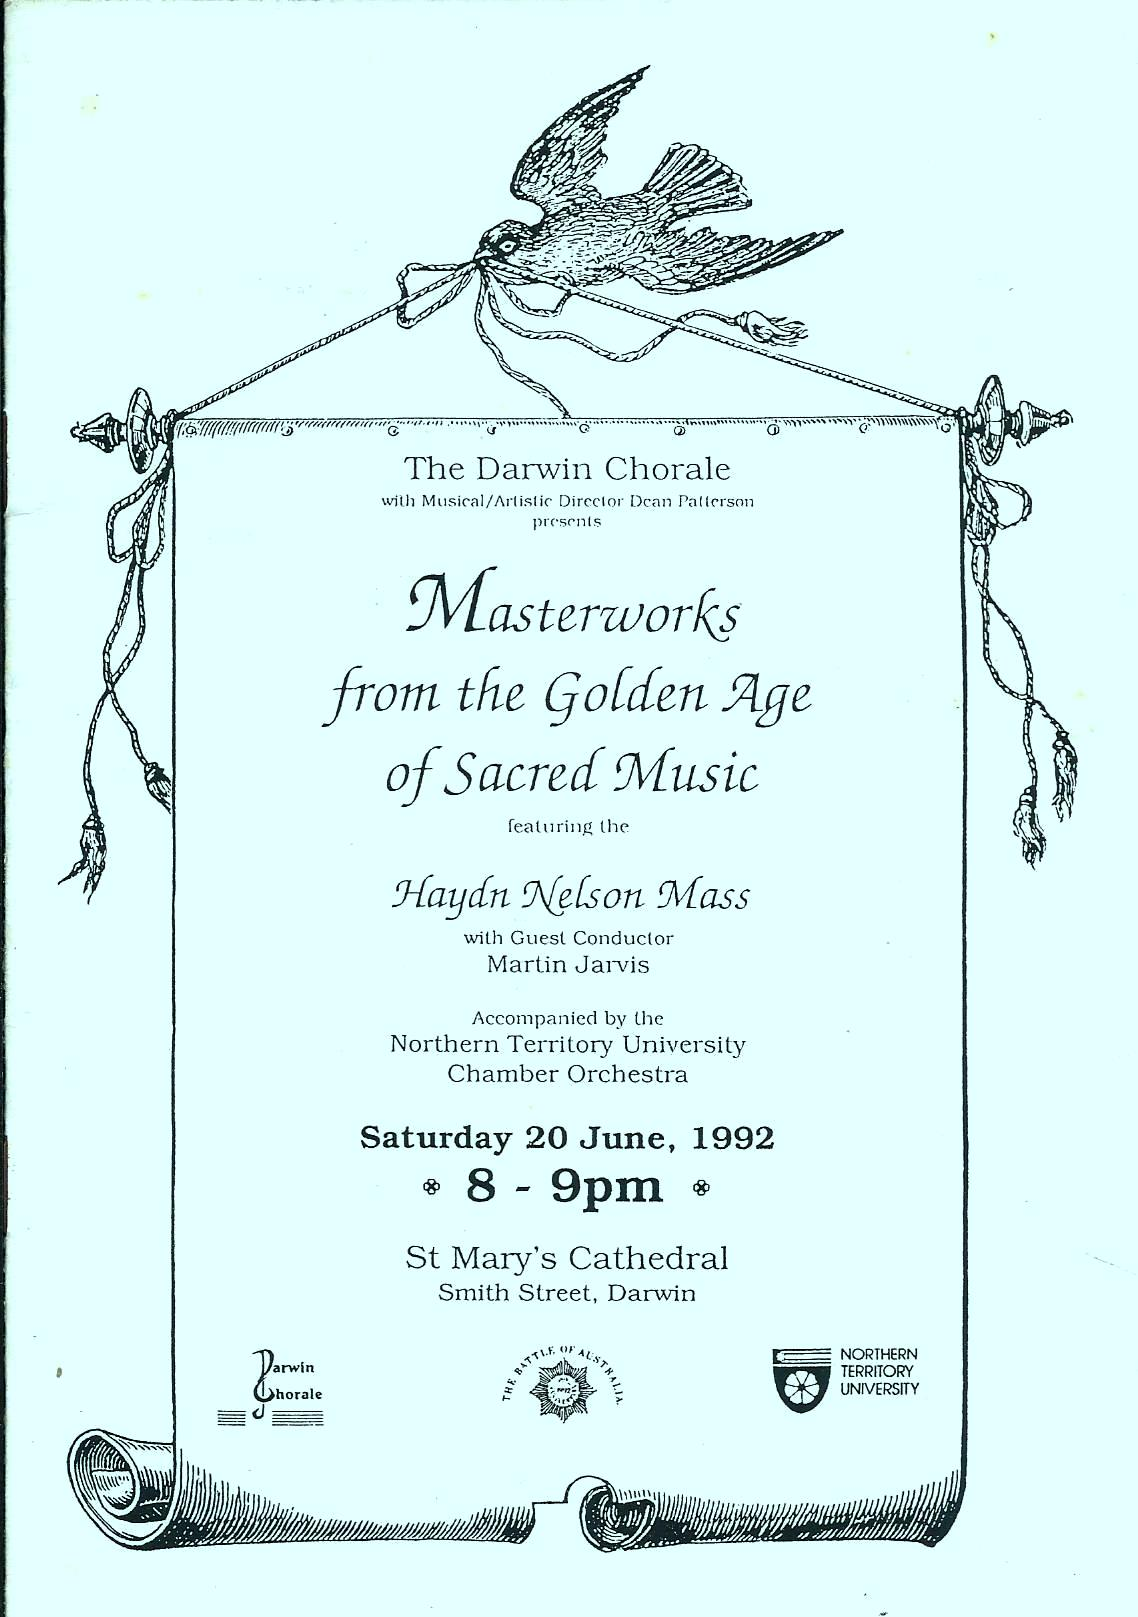 Masterworks from the Golden Age of Sacred Music